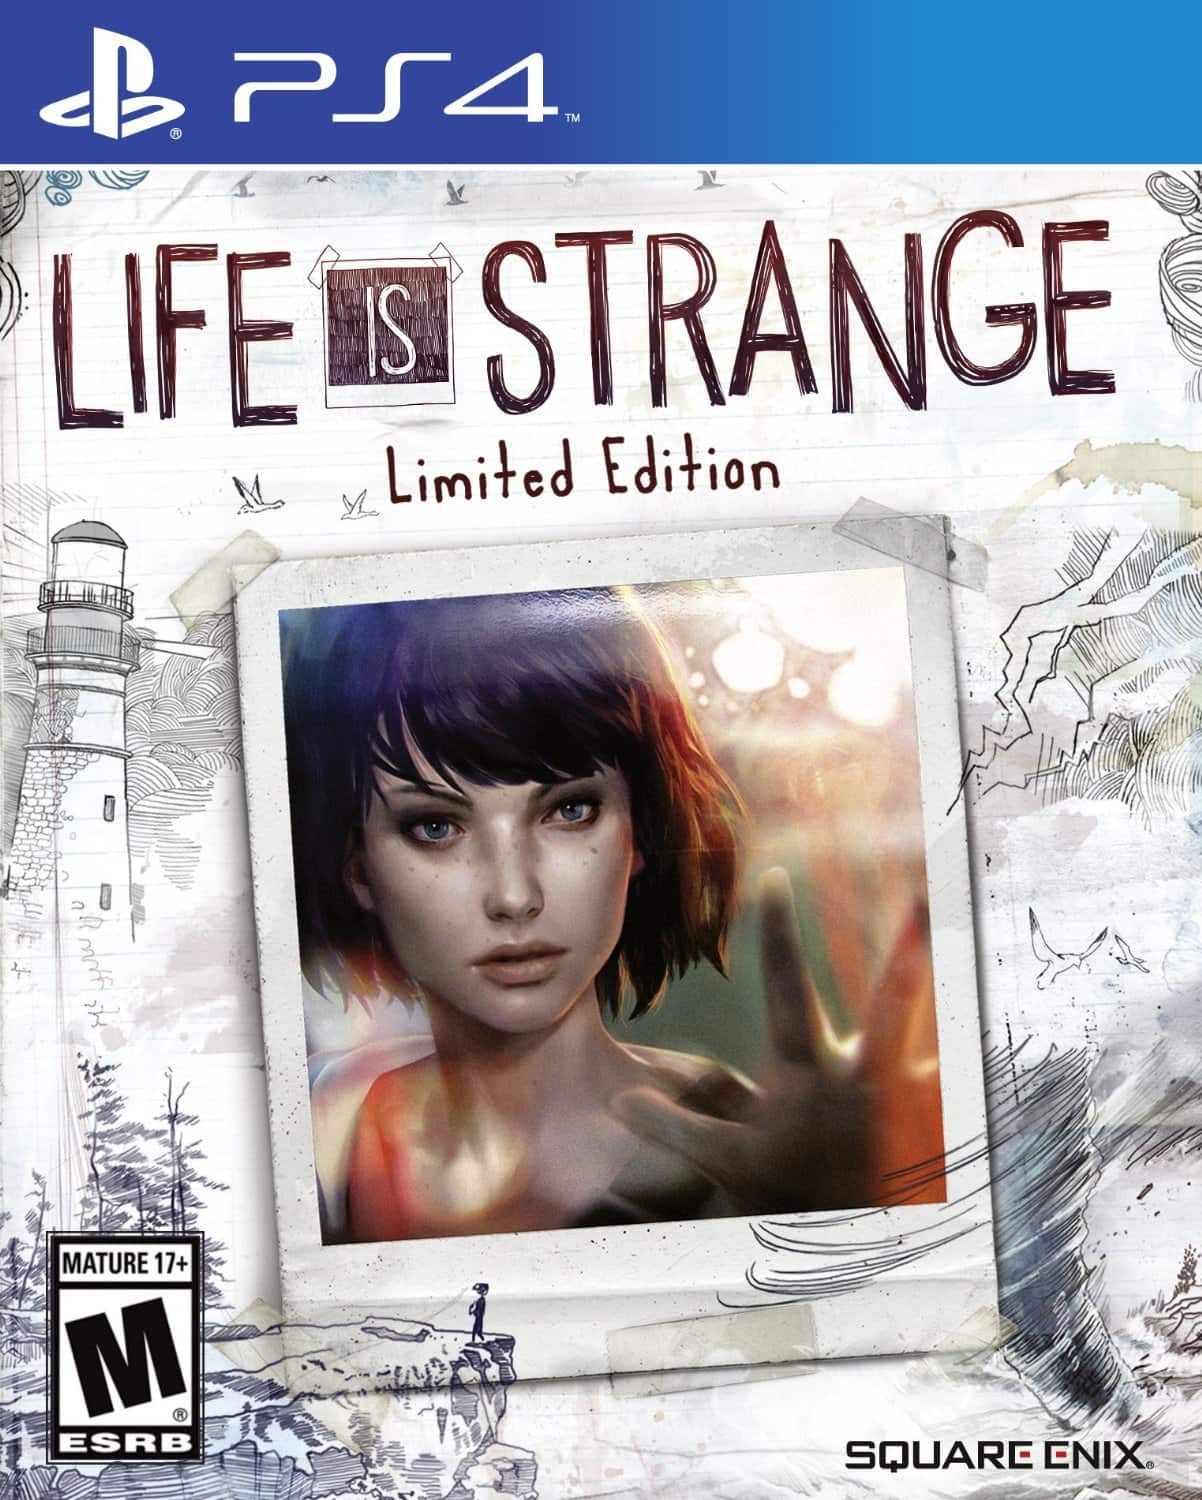 Life is Strange: Limited Edition (PS4 or Xbox One) $19.99 + Free In-Store Pickup